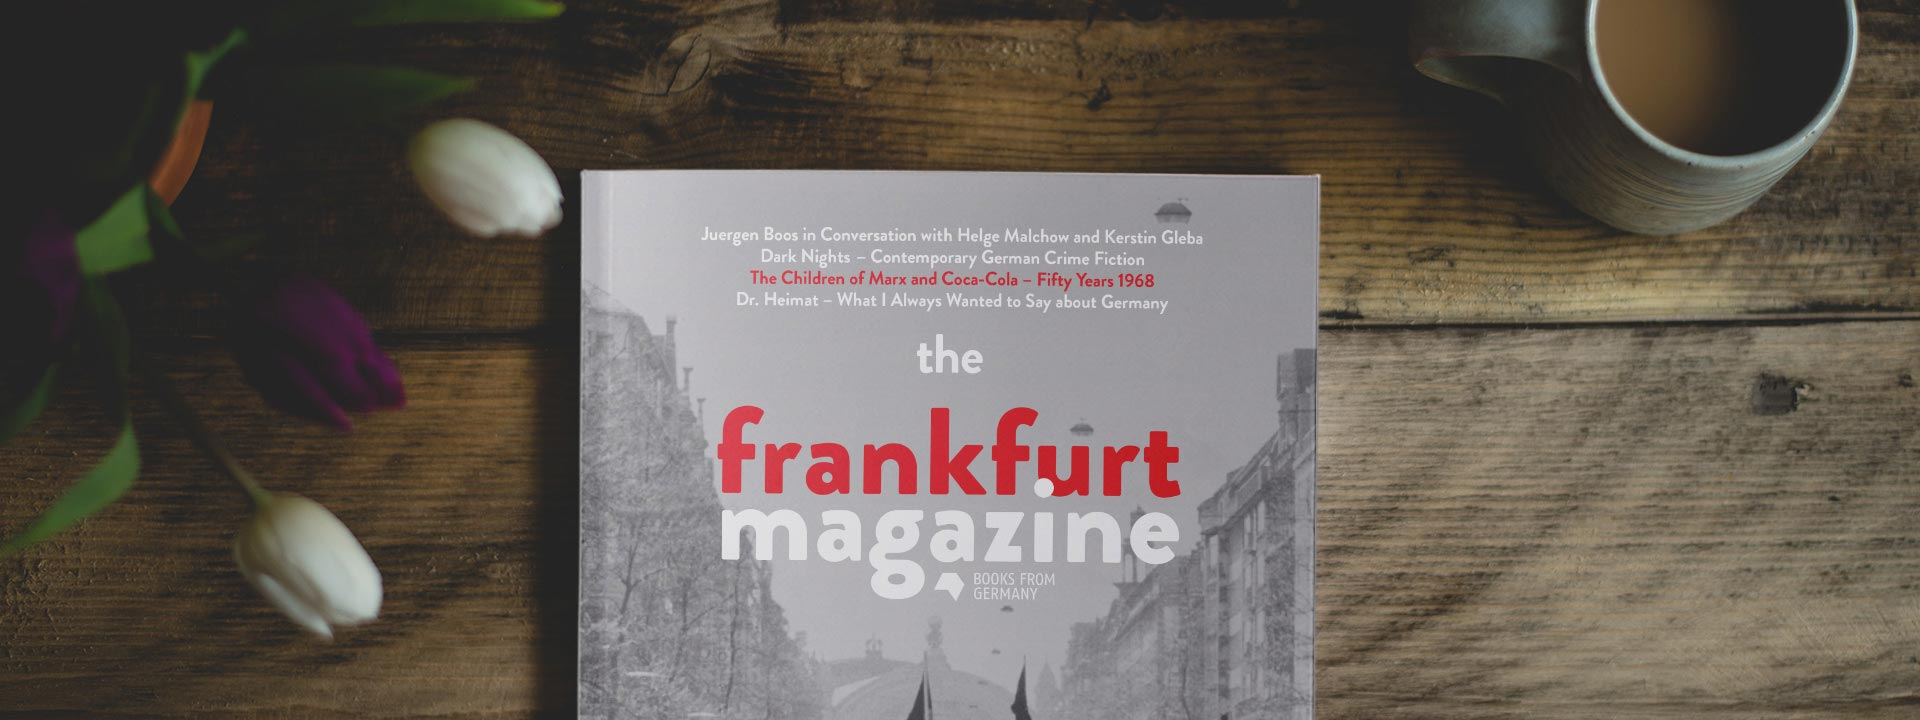 Benefit from the network of frankfurter buchmesse it also contains interviews with industry representatives essays and interesting or curious facts about the german reheart Images